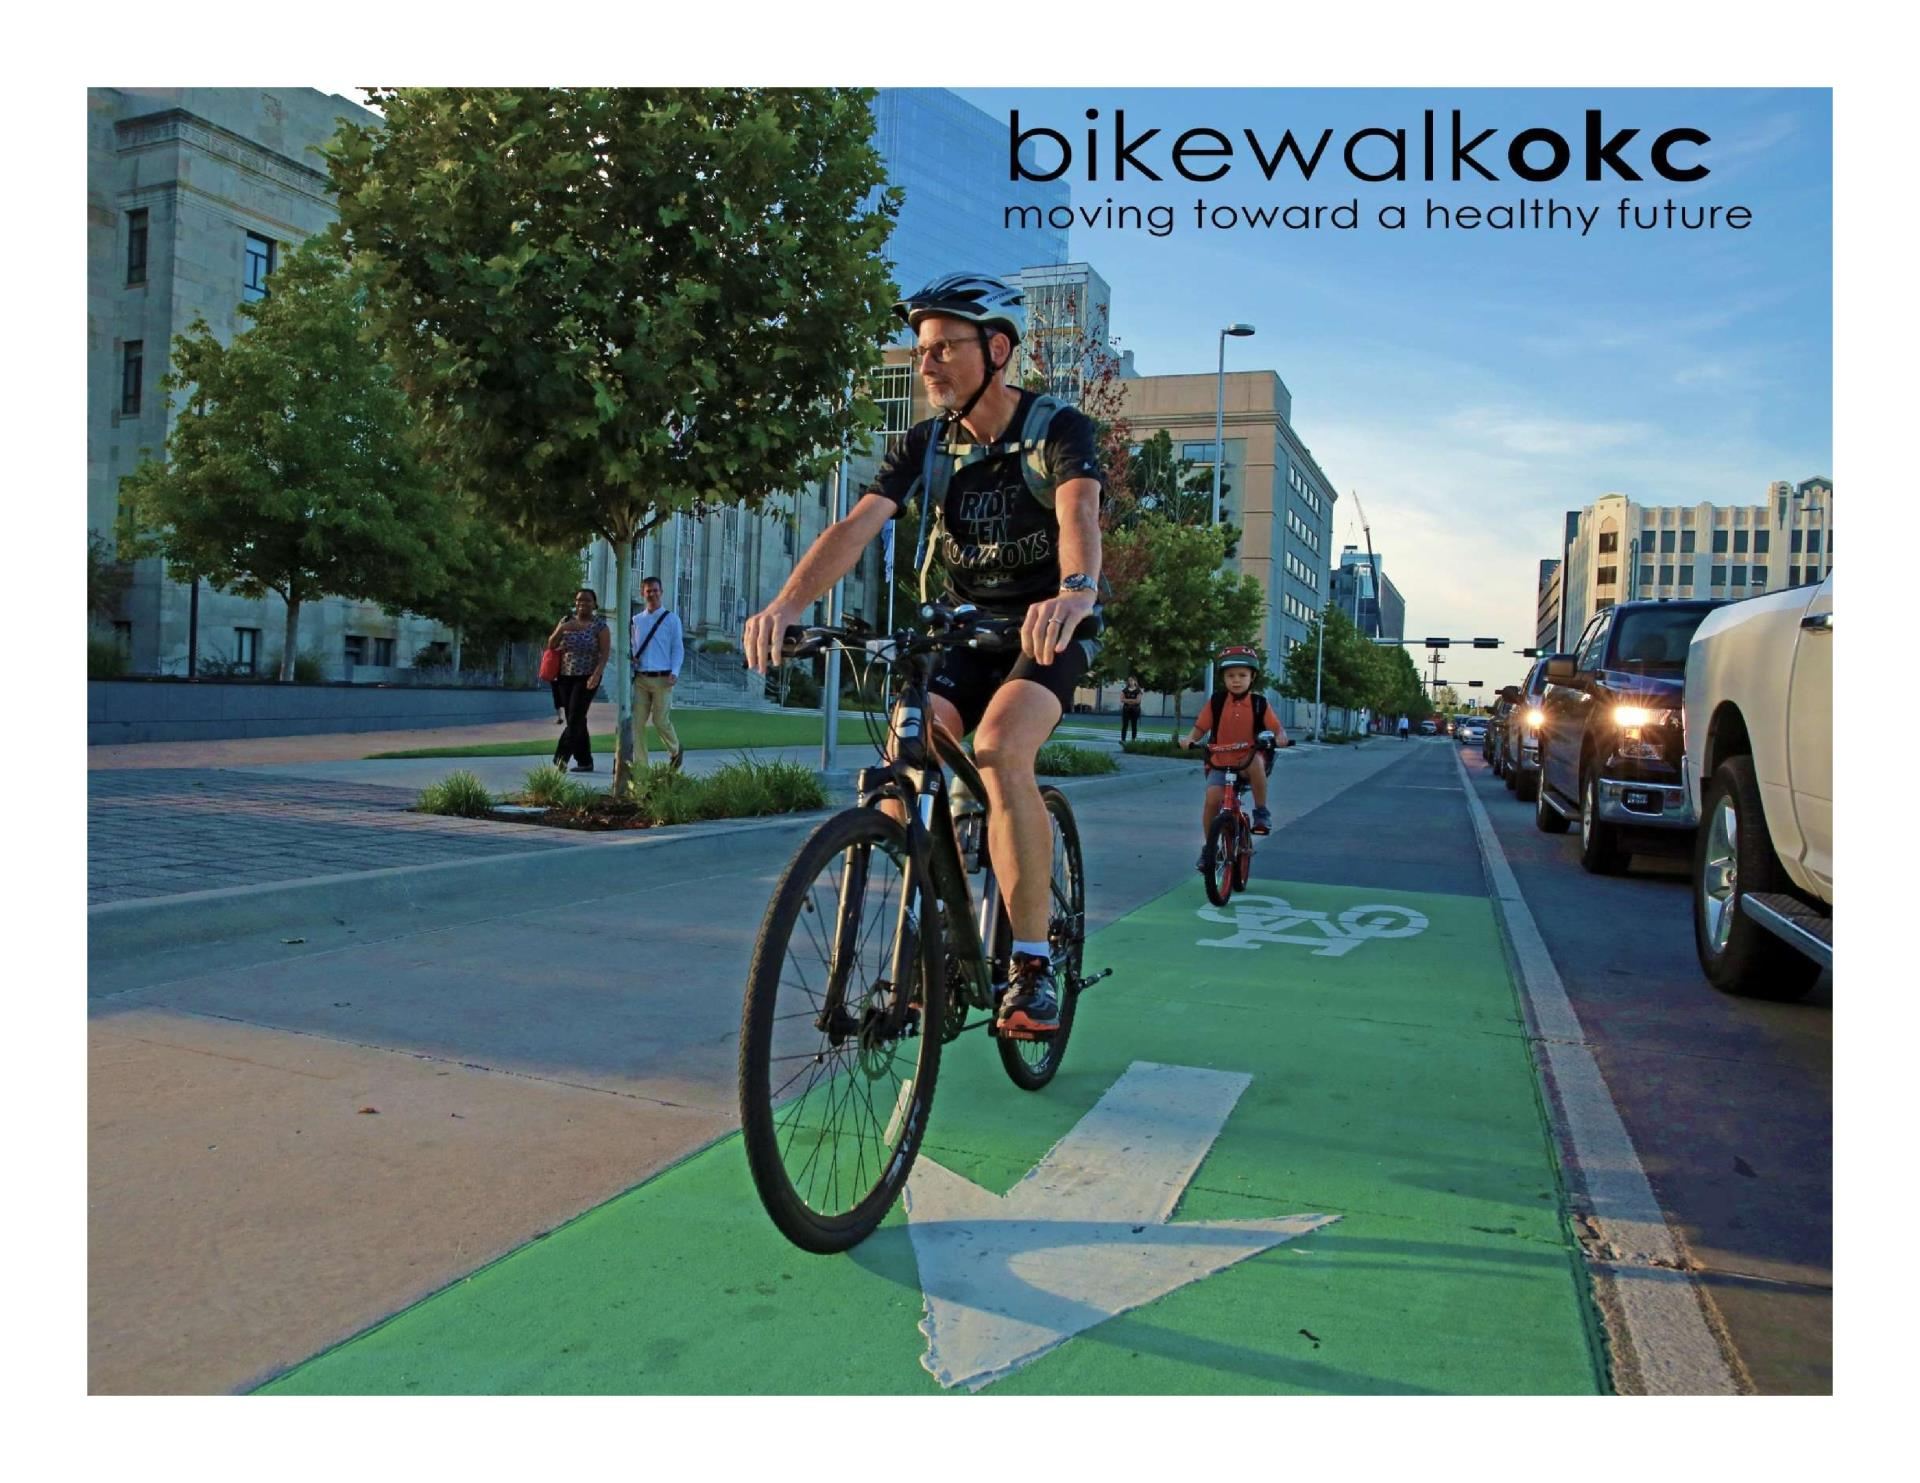 bikewalkcover-page-001